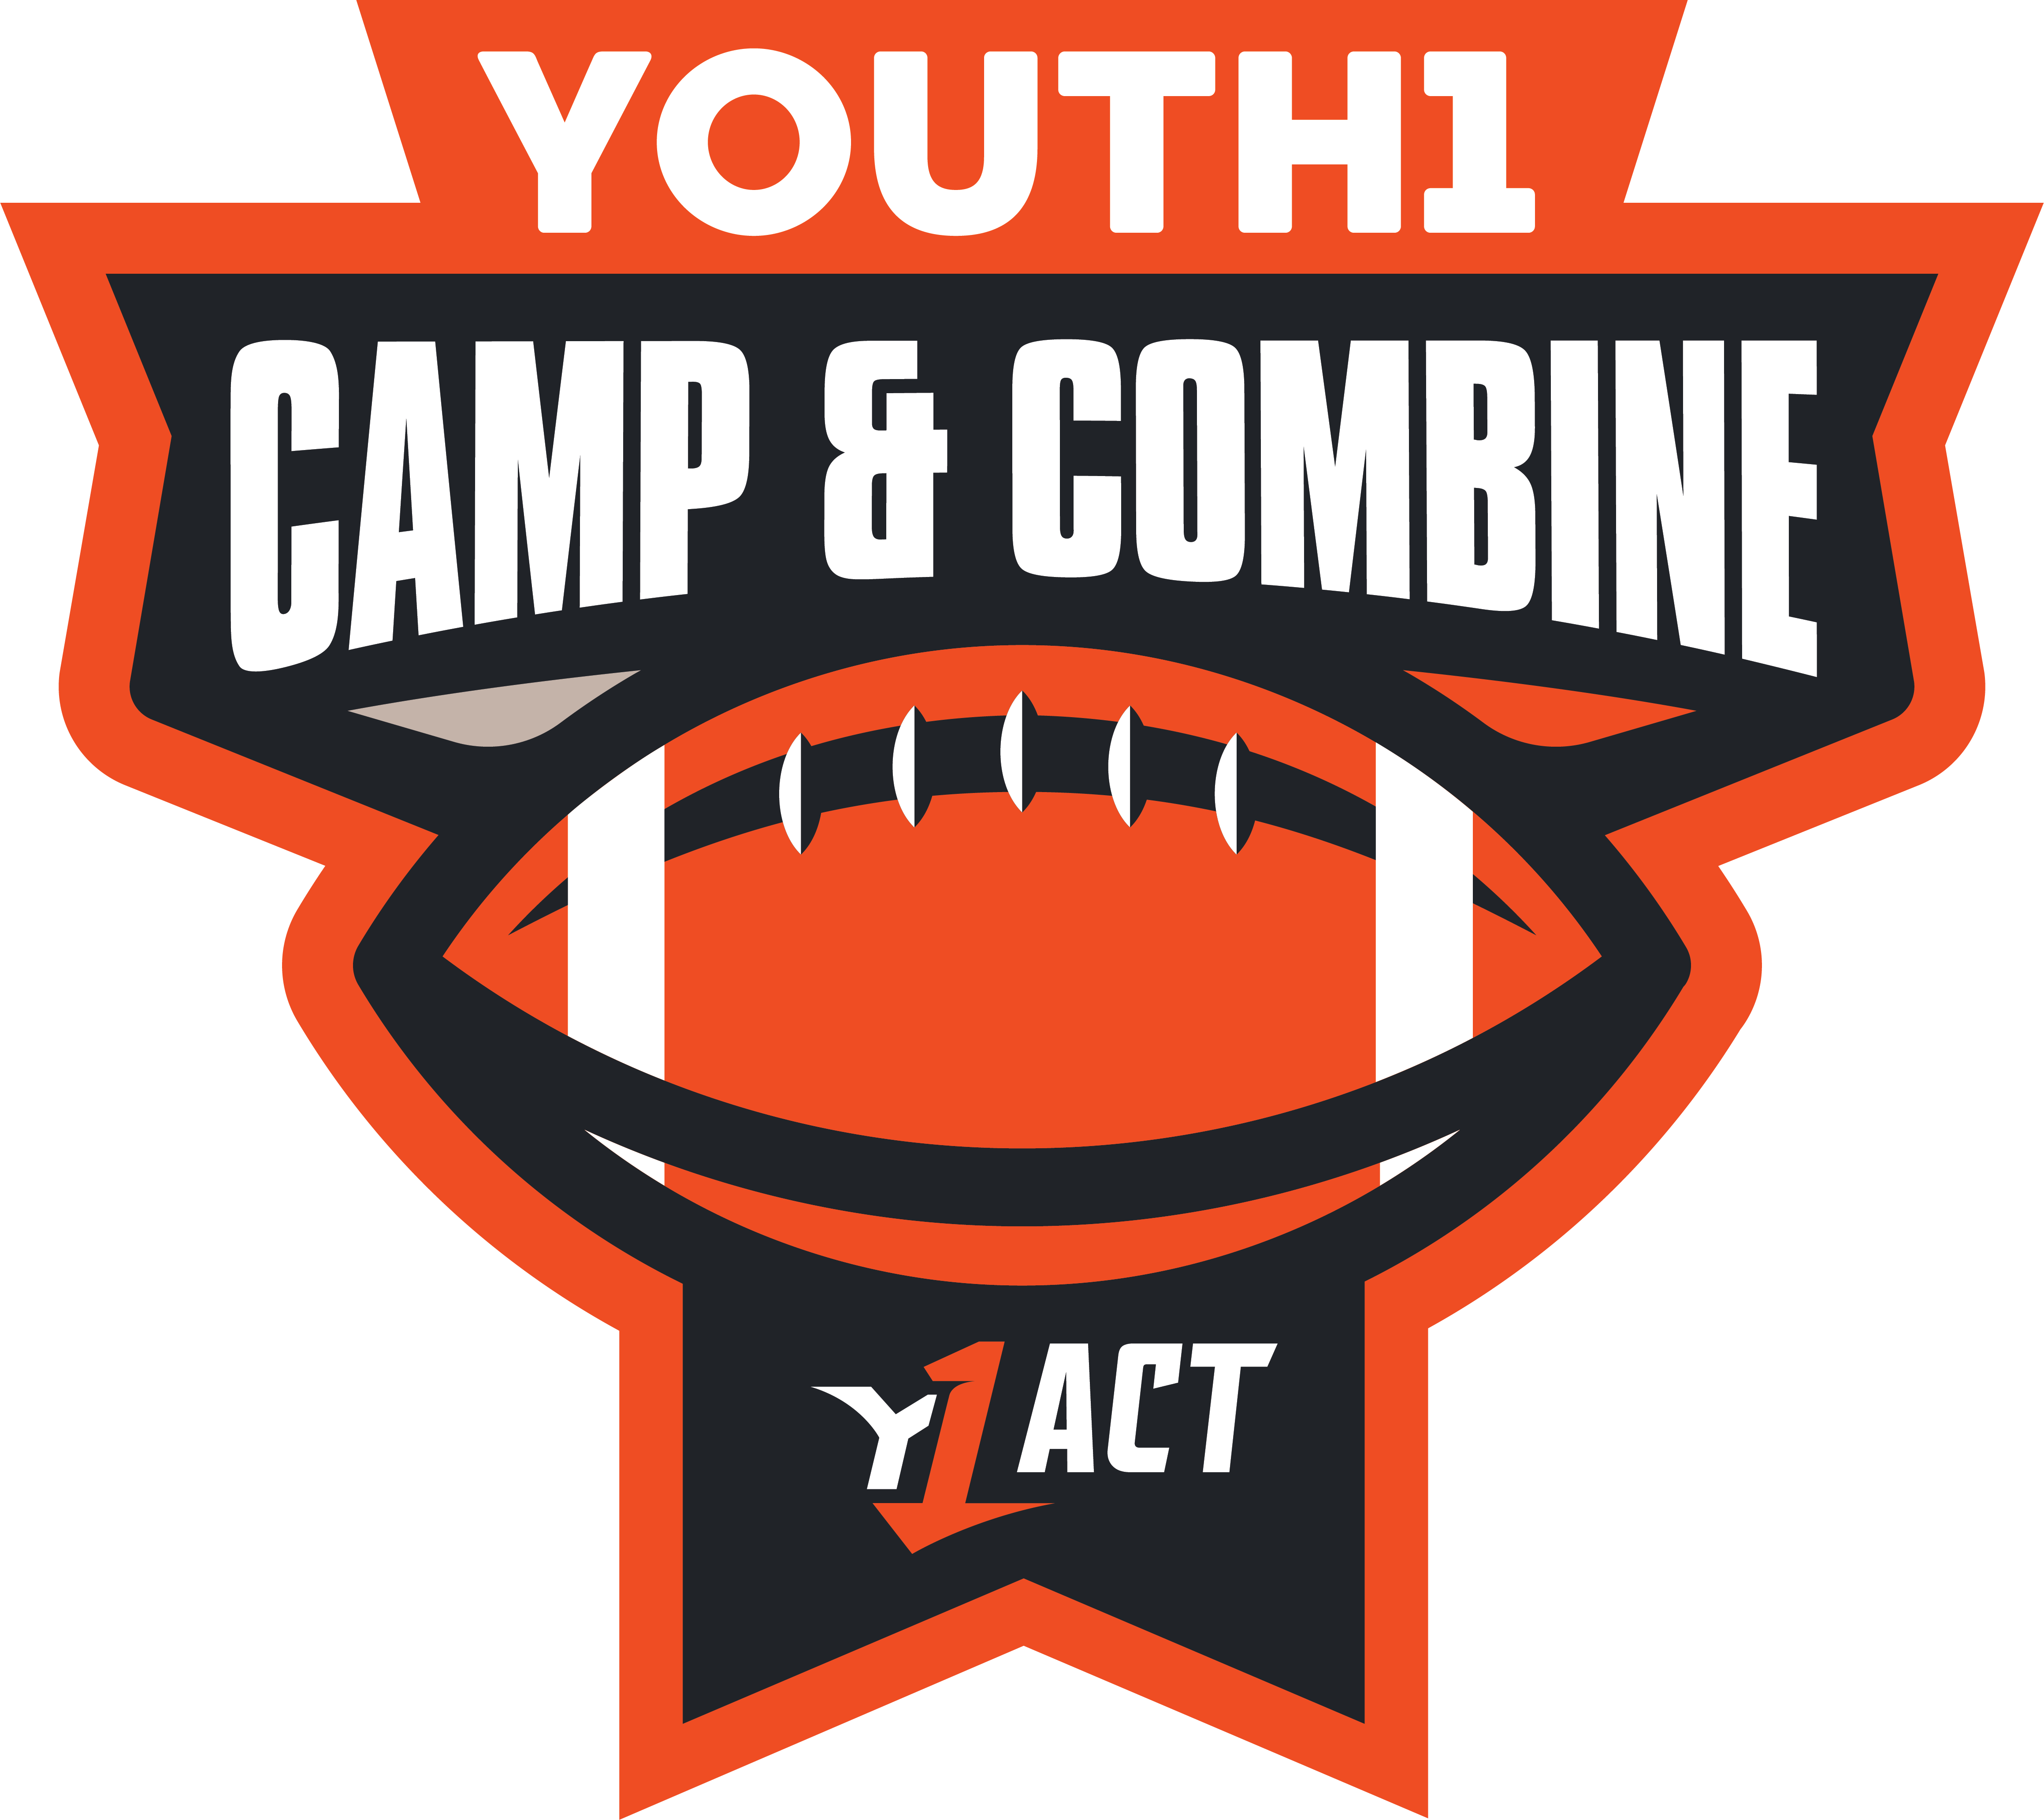 Y1act camp and combine